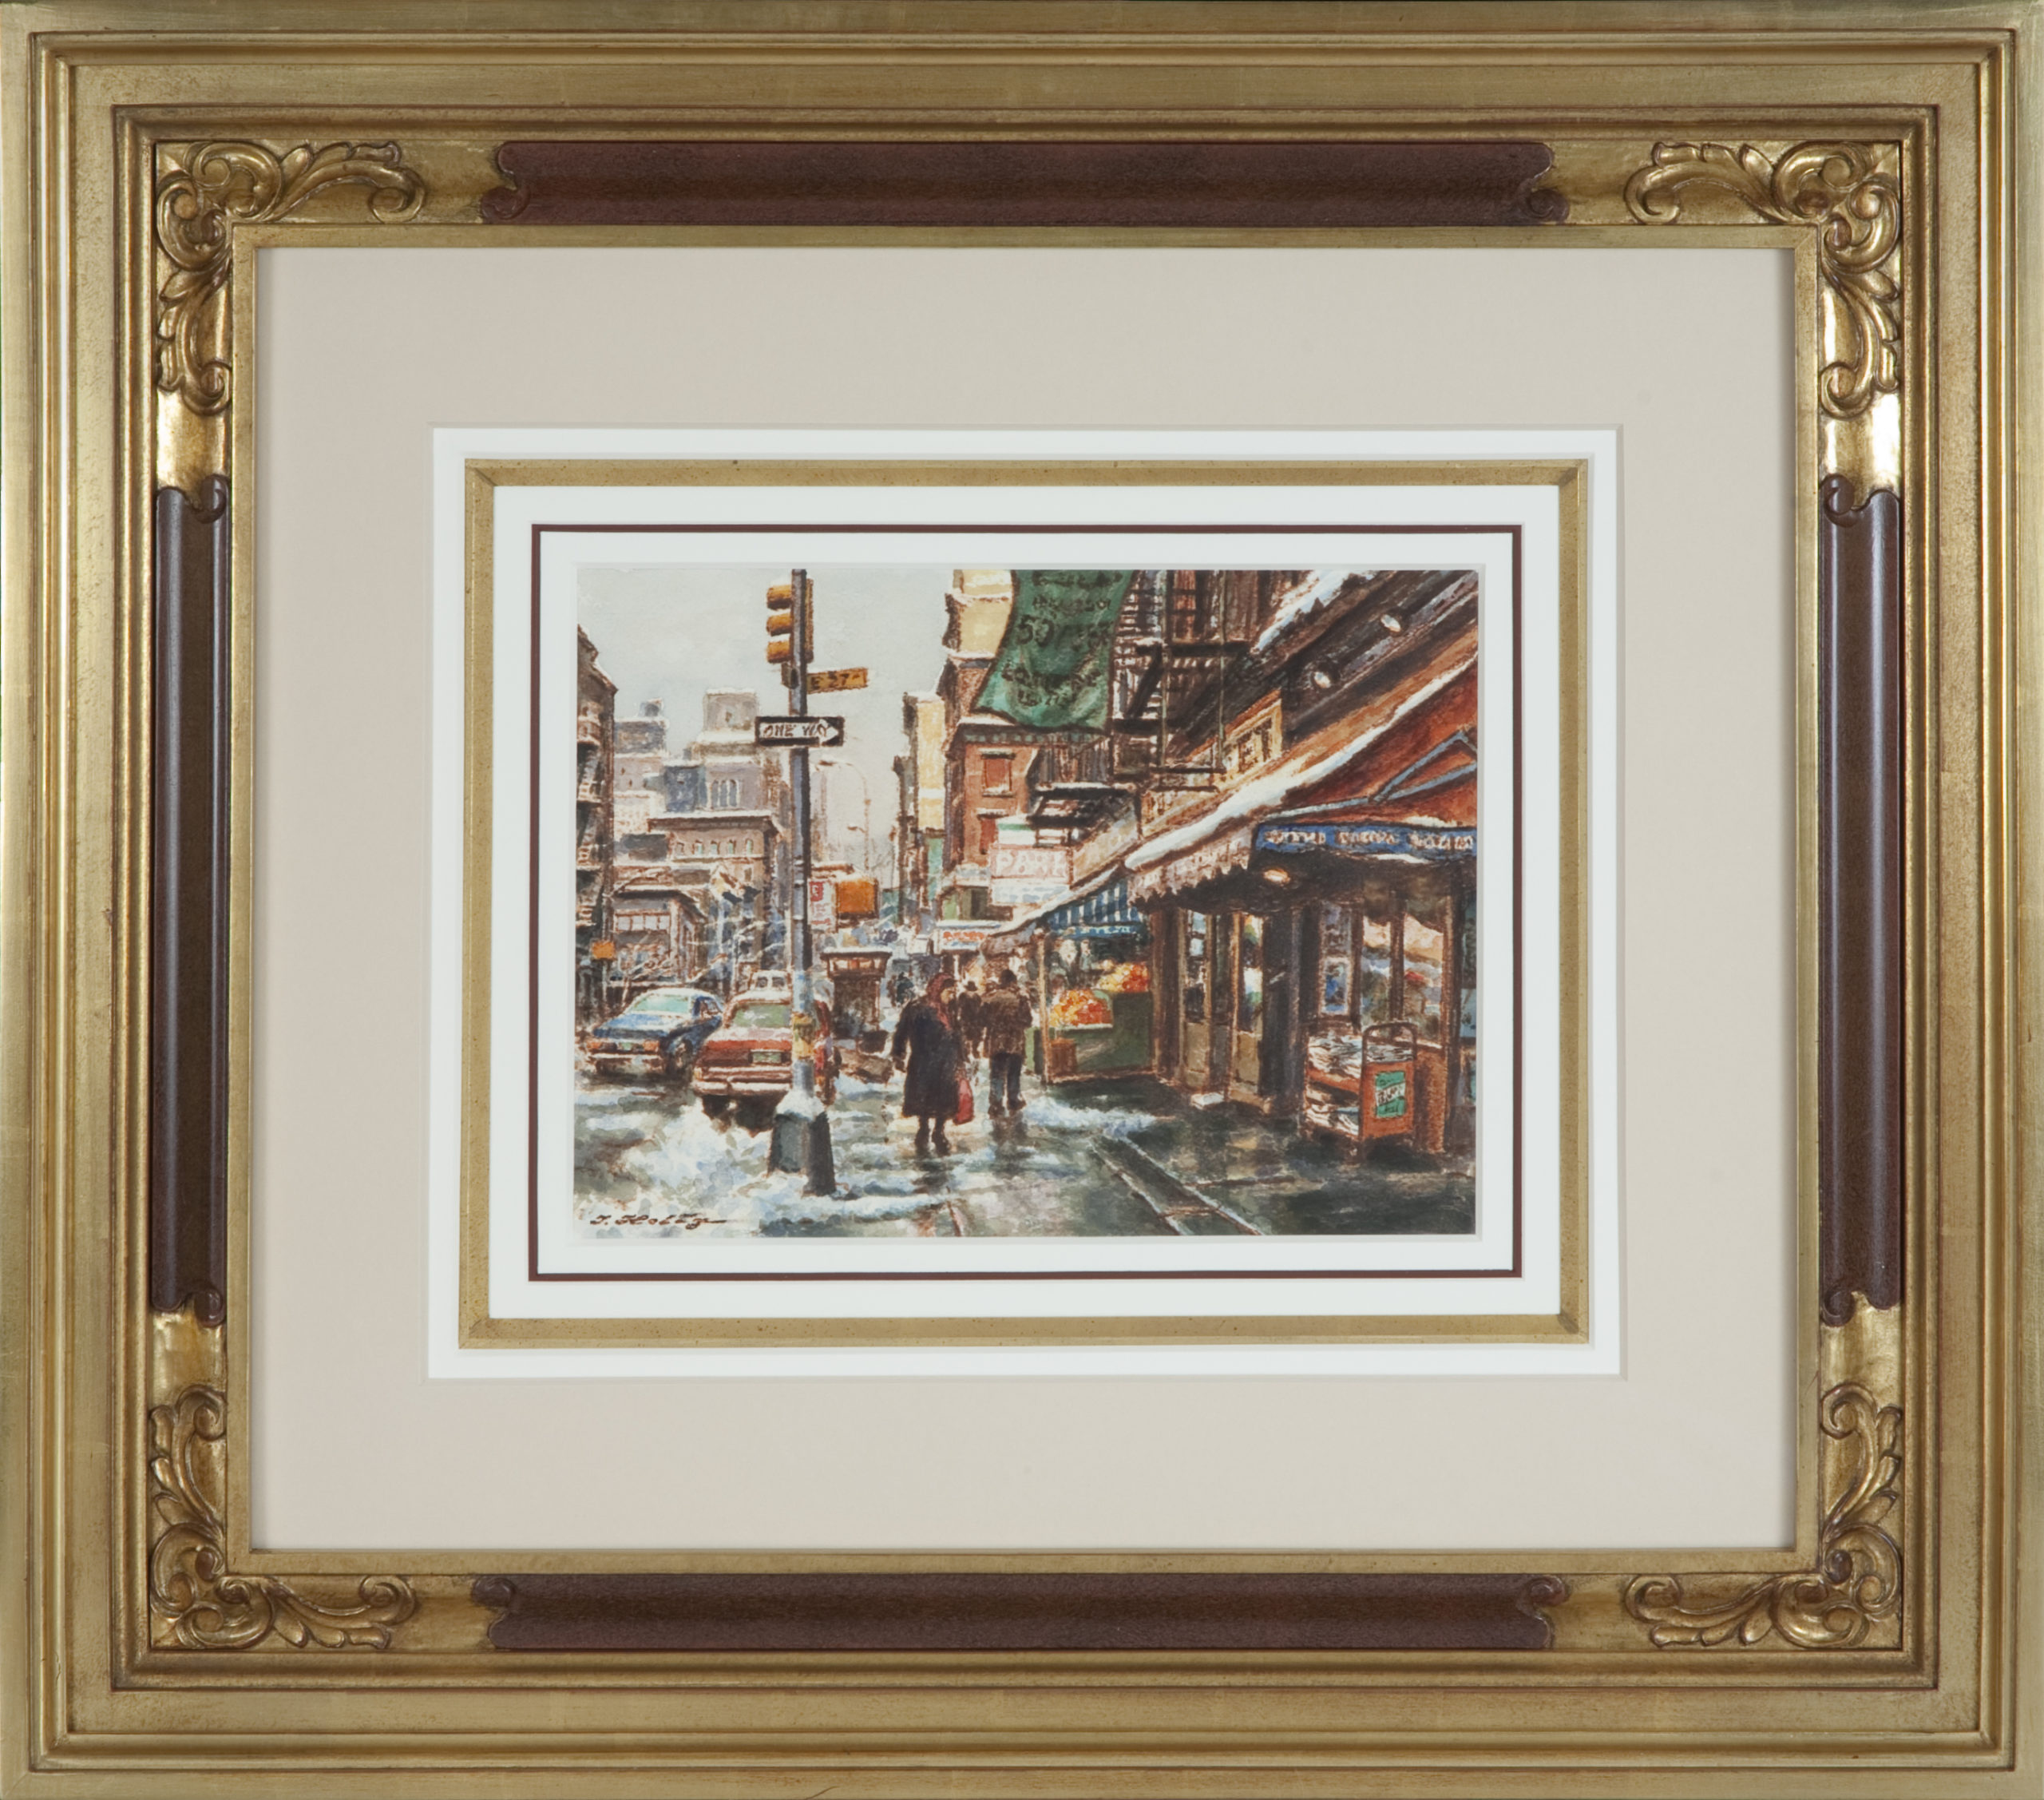 118 Snow on 27th Street 1973 - Watercolor - 12 x 10 - Frame: 27 x 24 x 2.5